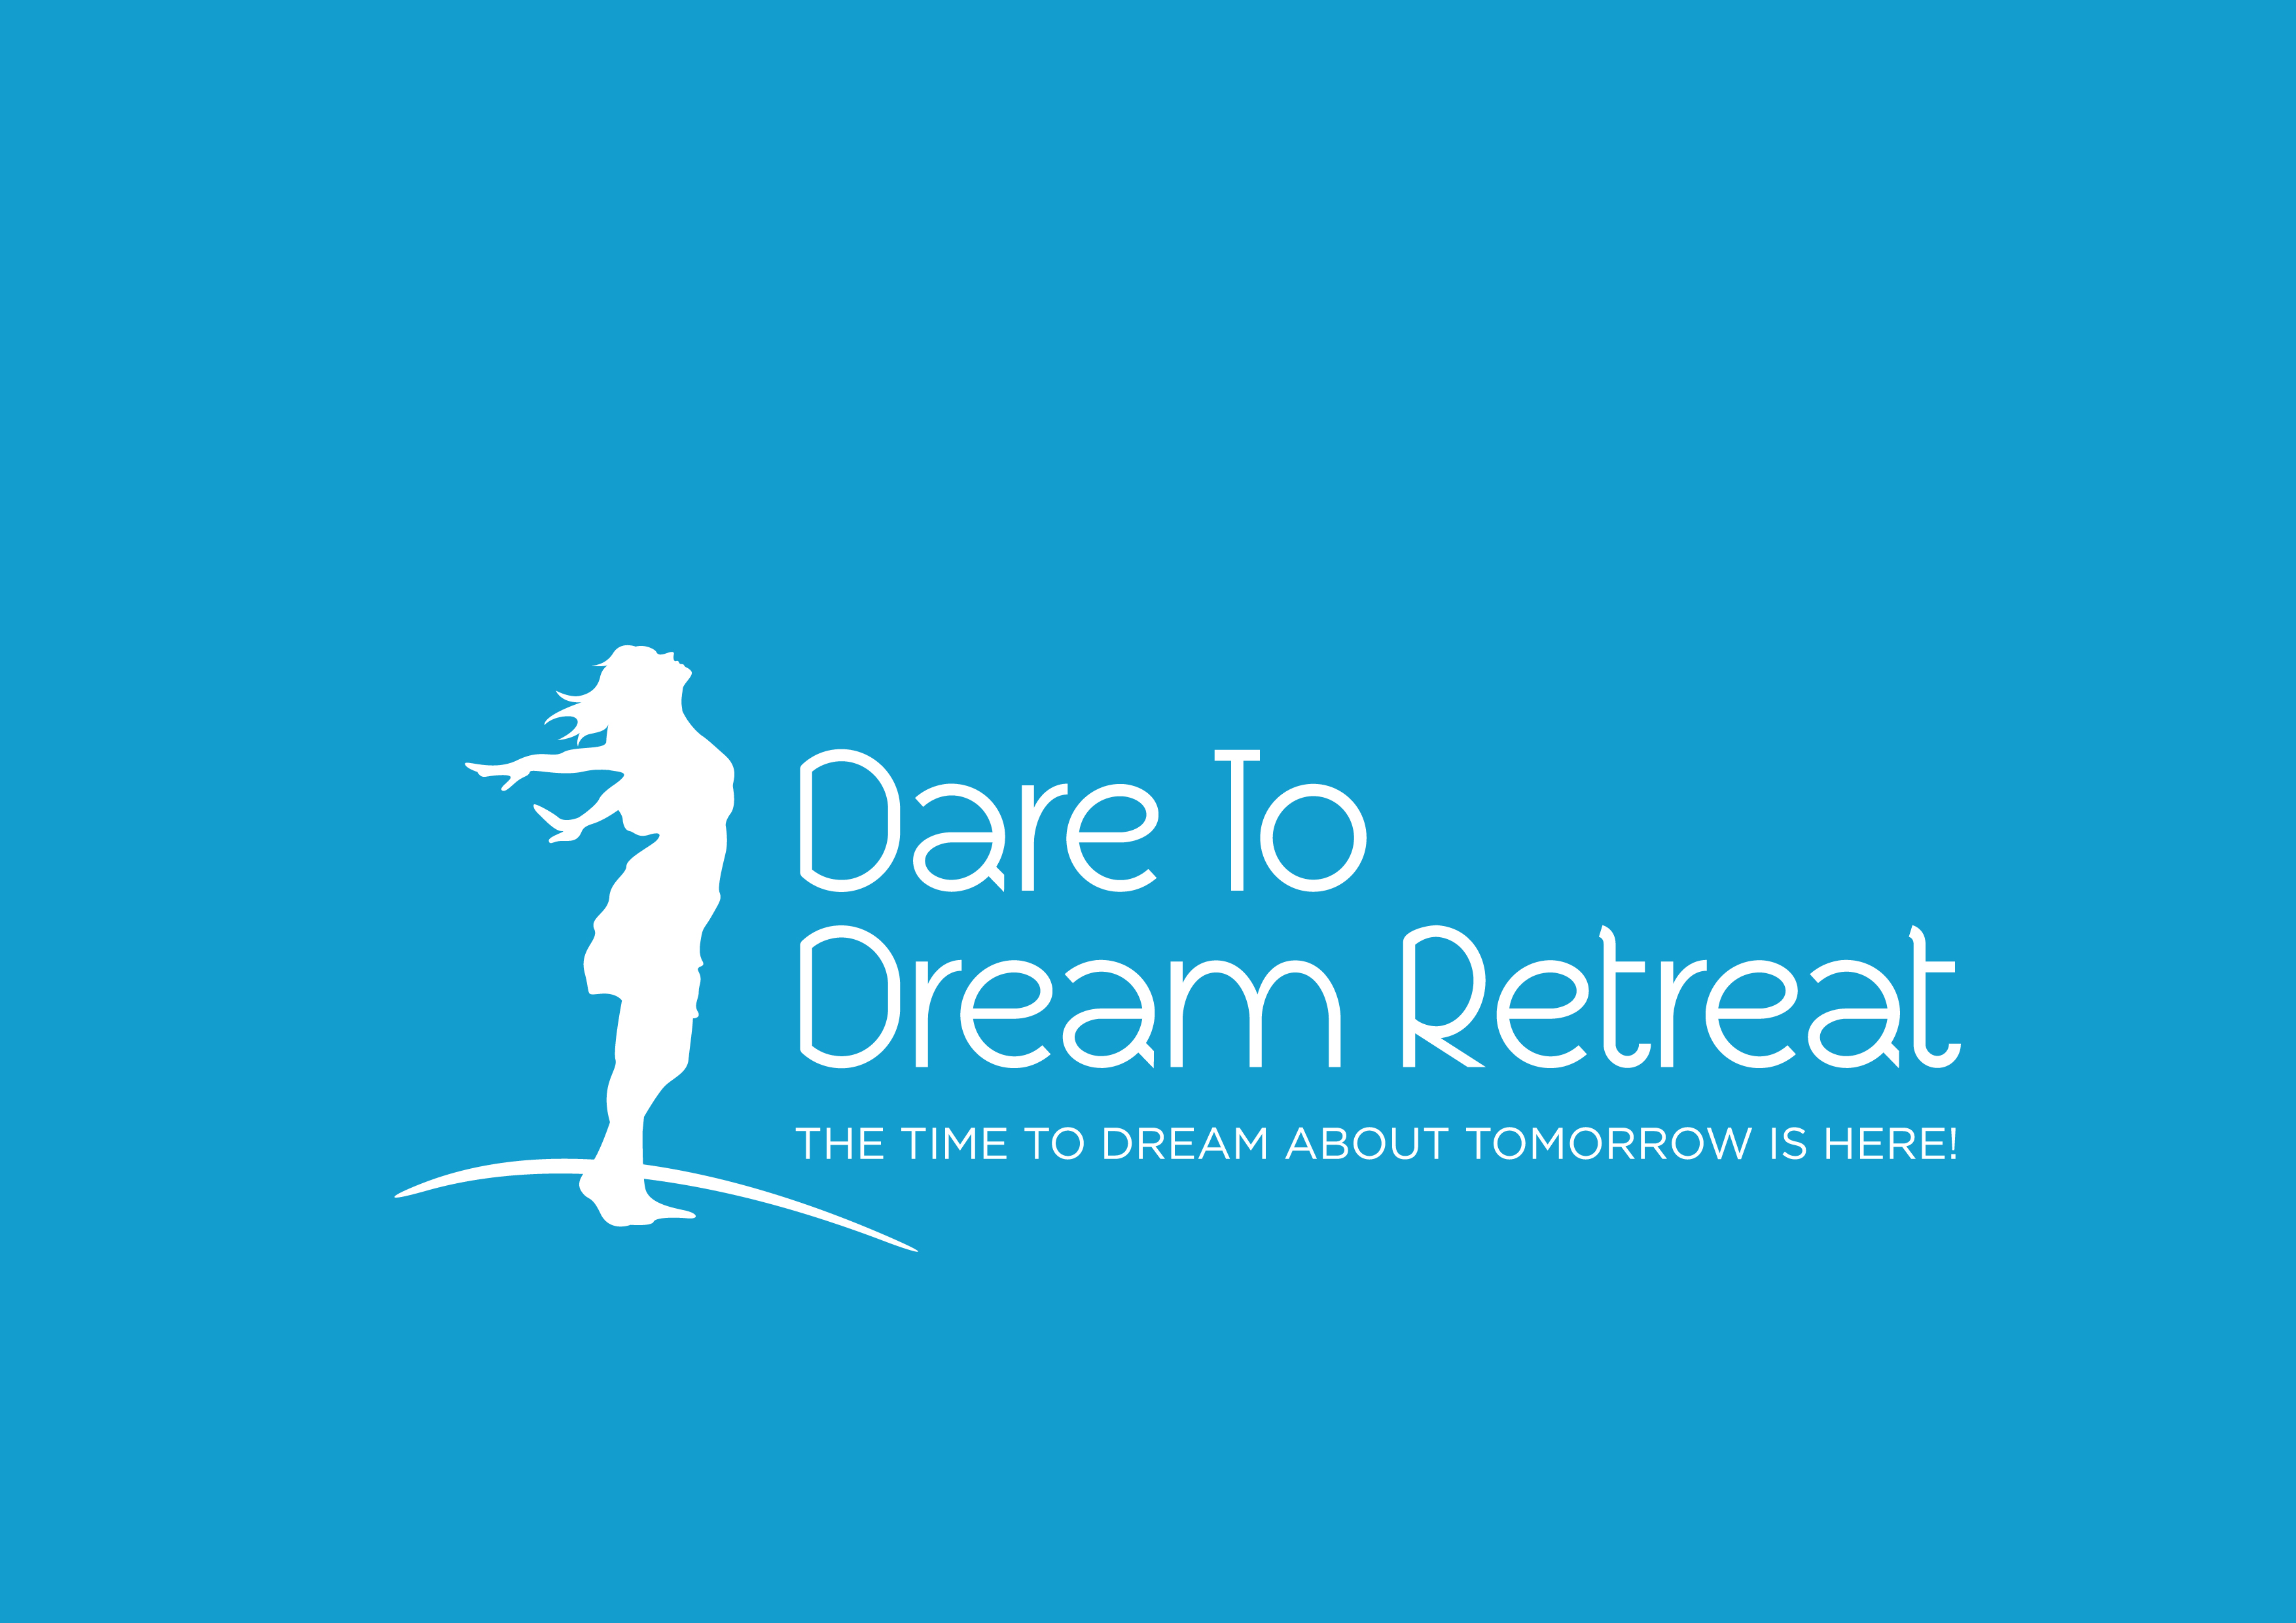 Dare to Dream Retreat